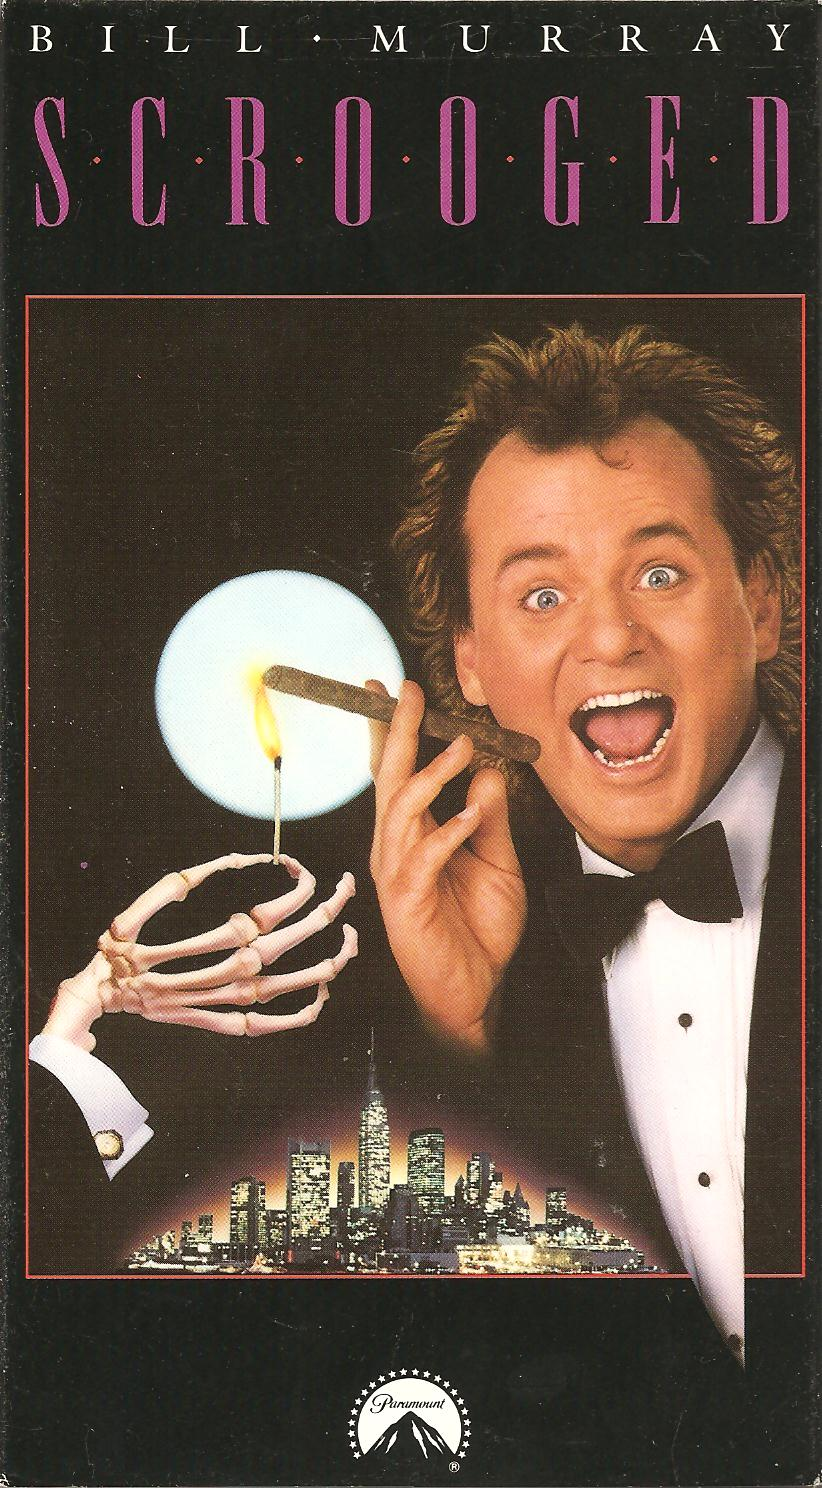 Scrooged (1988)  Comedy, Drama, Fantasy - Rated PG-13 : A selfish, cynical T.V. executive is haunted by three spirits bearing lessons on Christmas Eve.